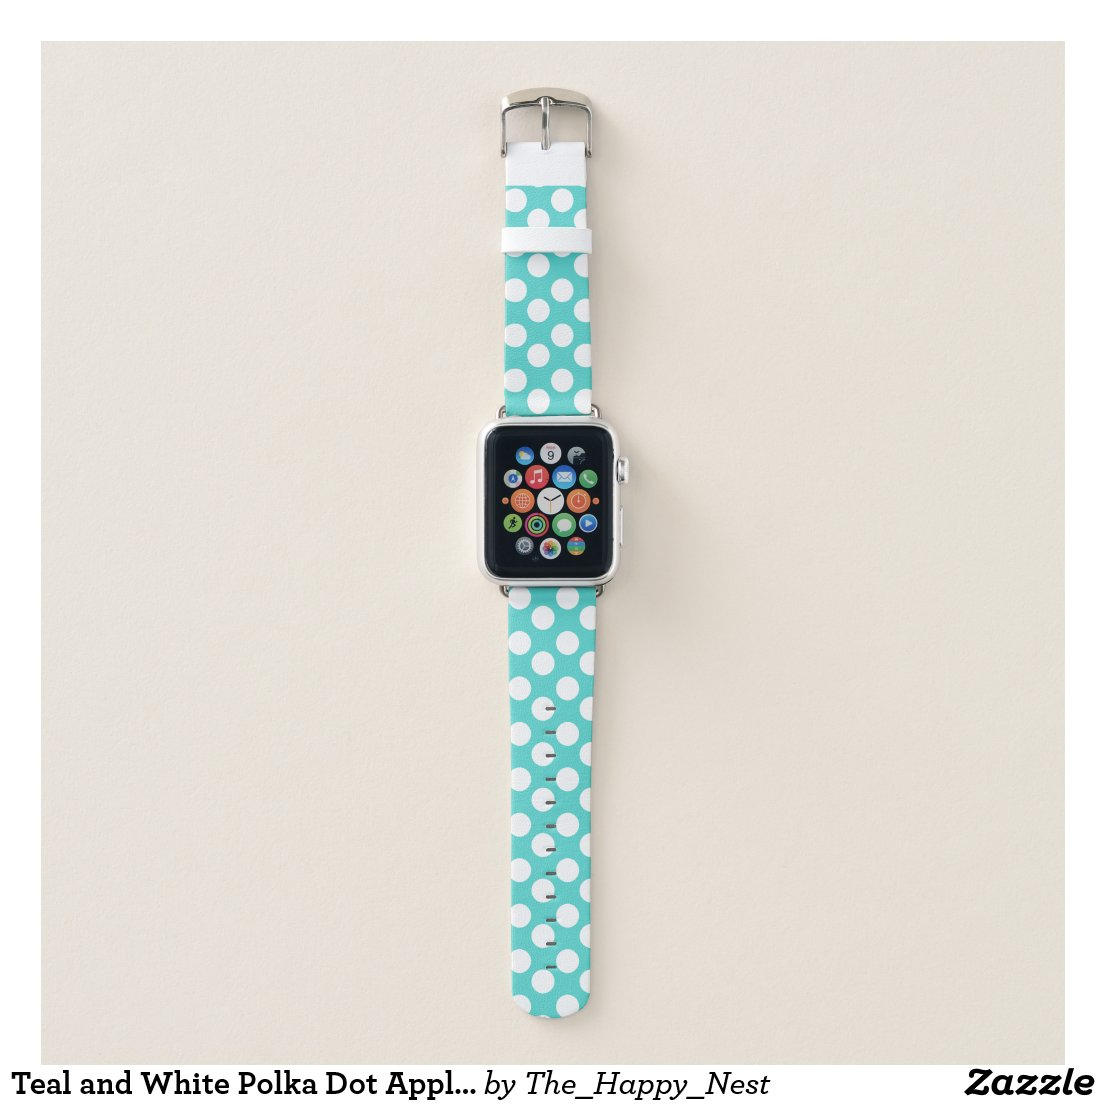 Teal and White Polka Dot Apple Watch Band